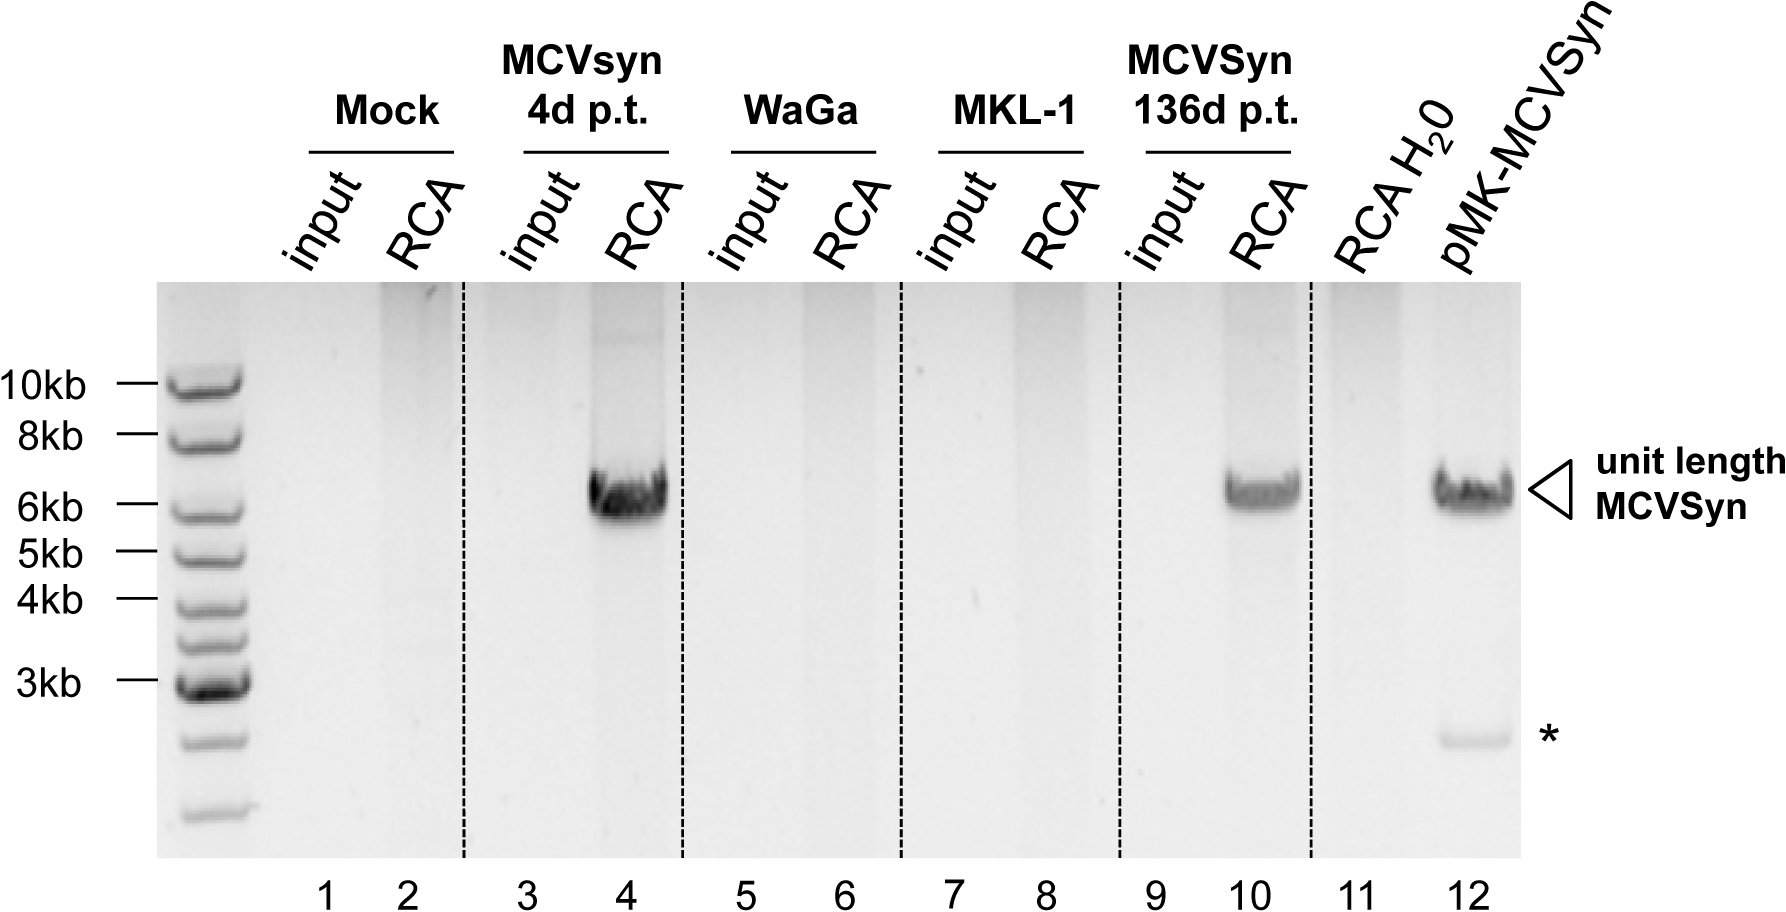 RCA analysis suggests episomal persistence of MCVSyn genomes.